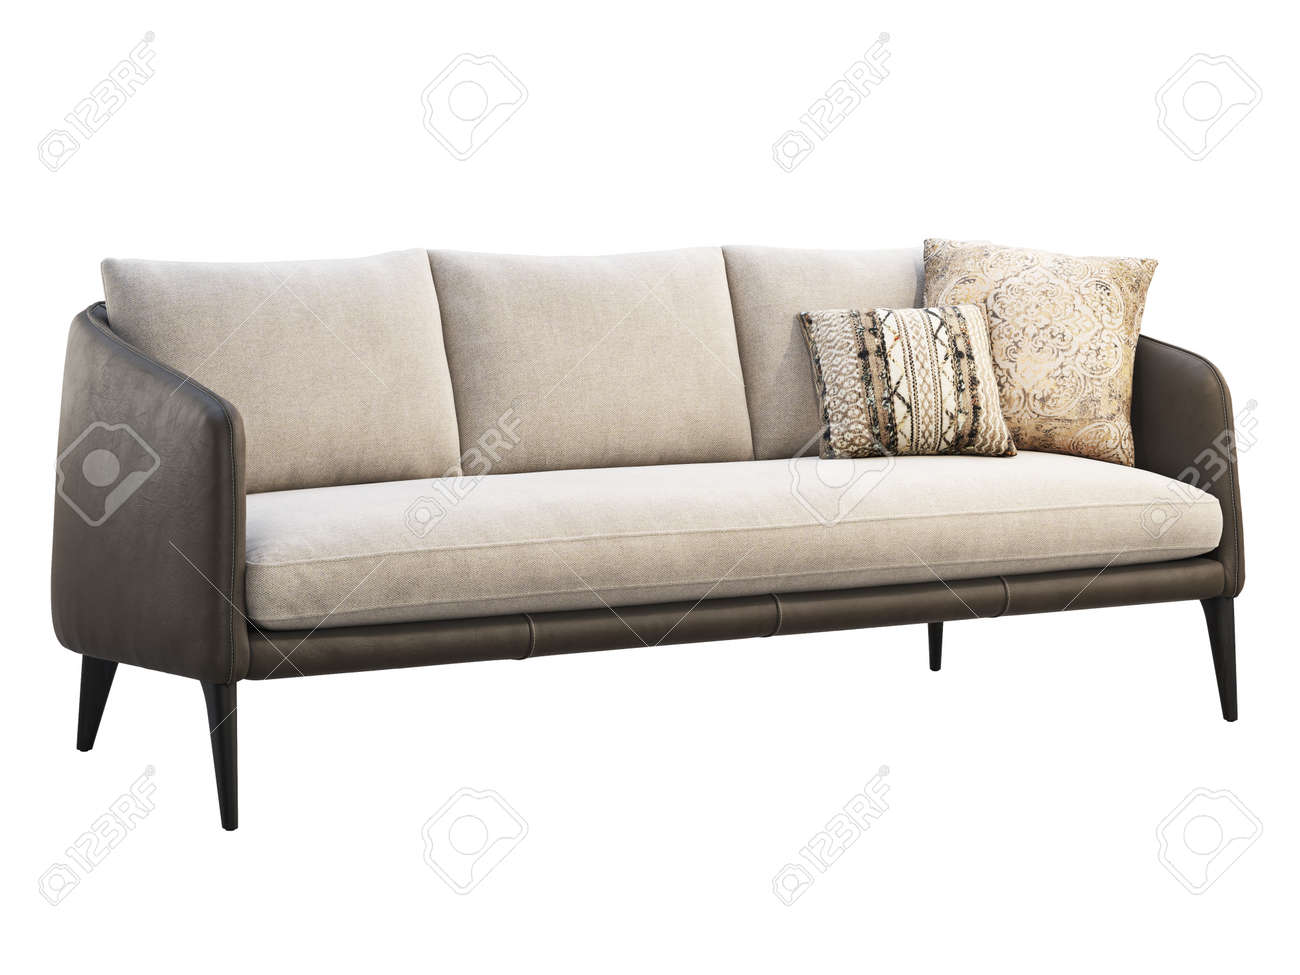 - Dark Brown Leather Sofa With Light Cushion And Pillows On White